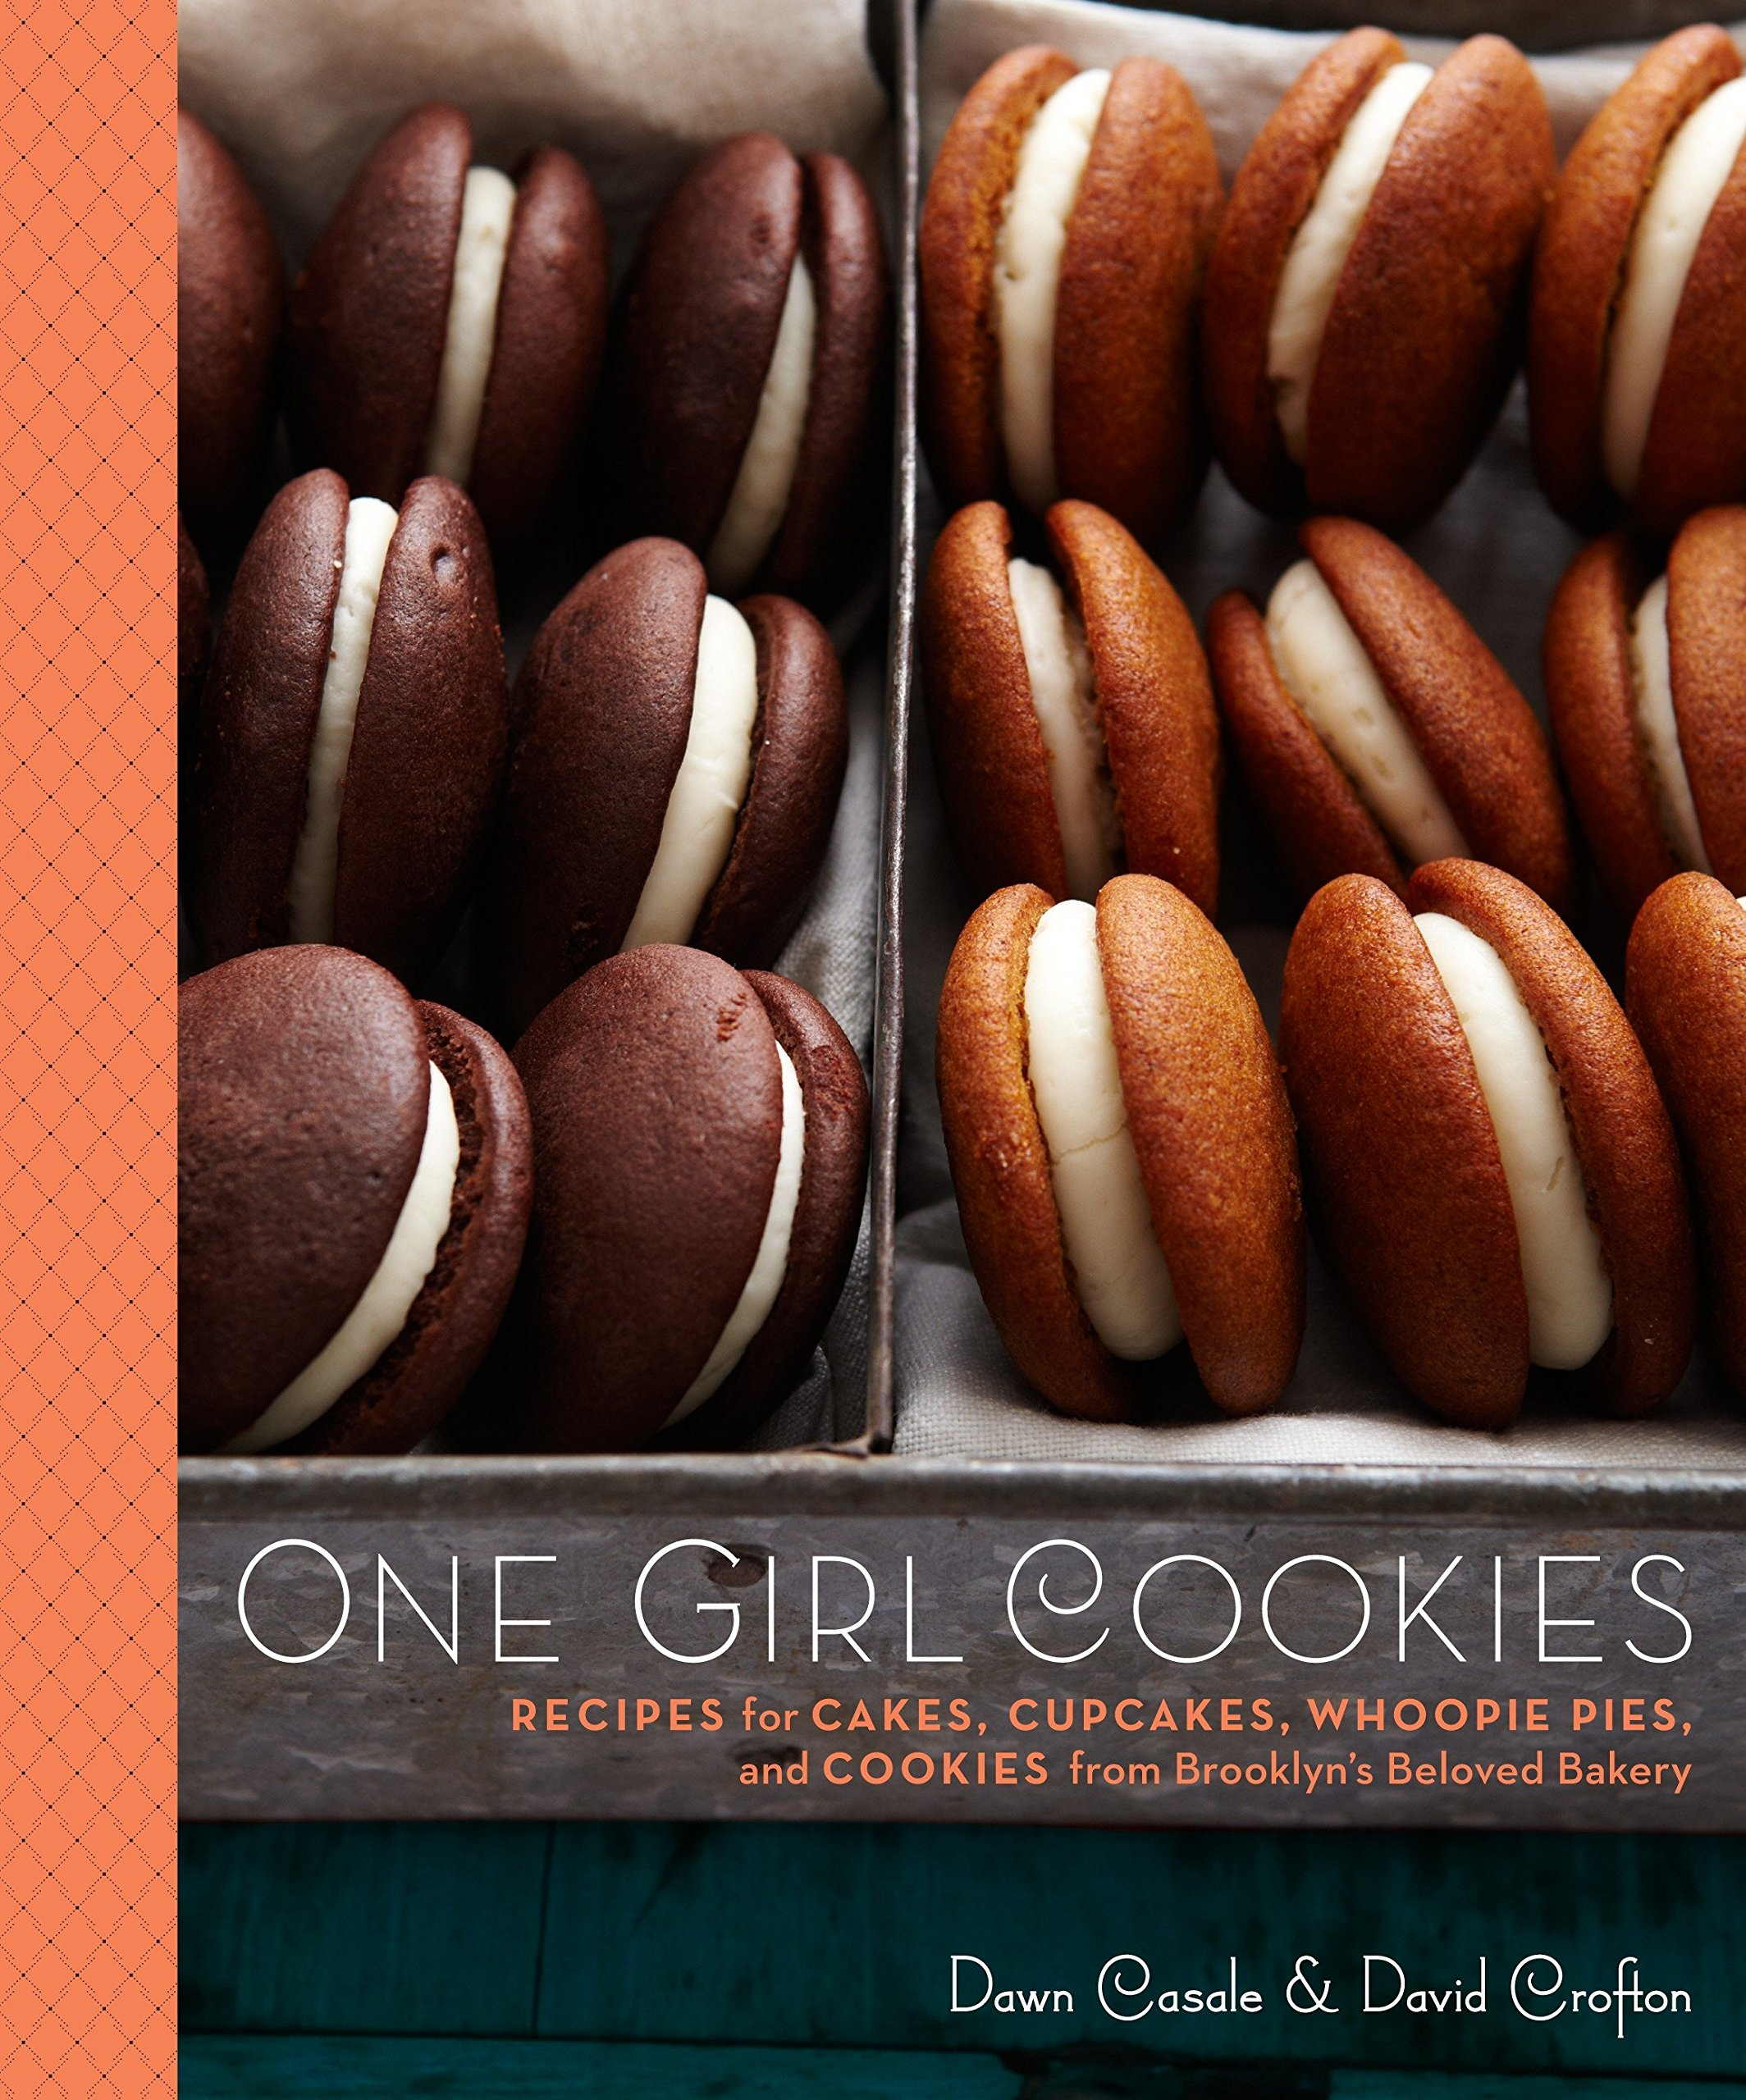 One Girl Cookies: Recipes for Cakes, Cupcakes, Whoopie Pies, and Cookies from Brooklyn's Beloved Bakery by Random House